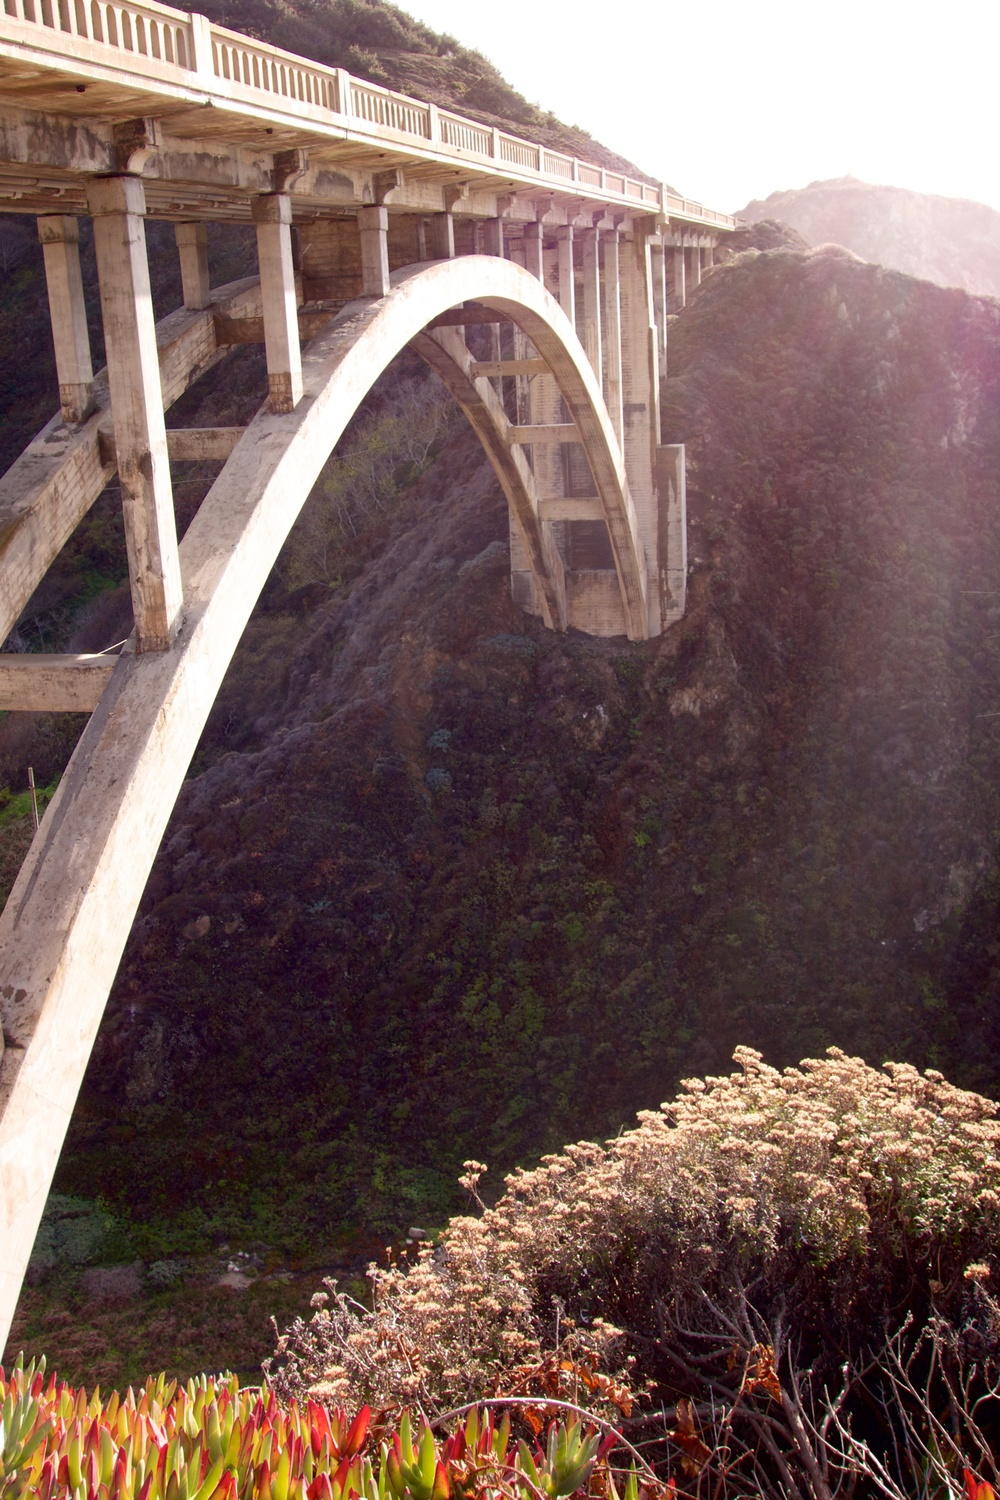 →  The Bixby Creek Bridge.